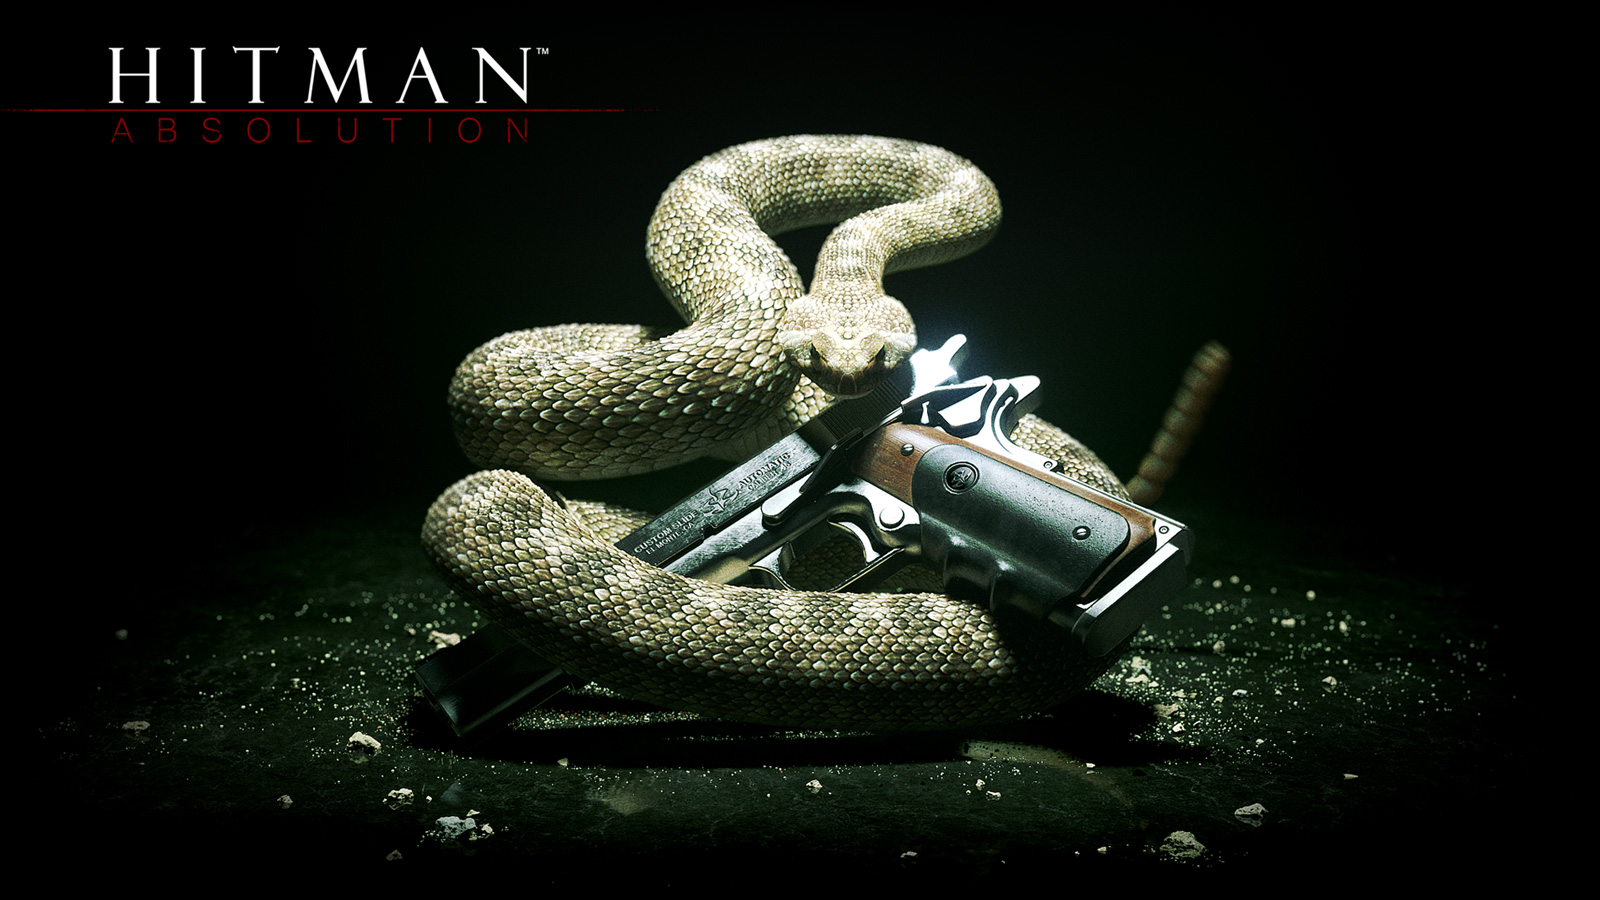 55 Hitman: Absolution HD Wallpapers | Background Images - Wallpaper Abyss